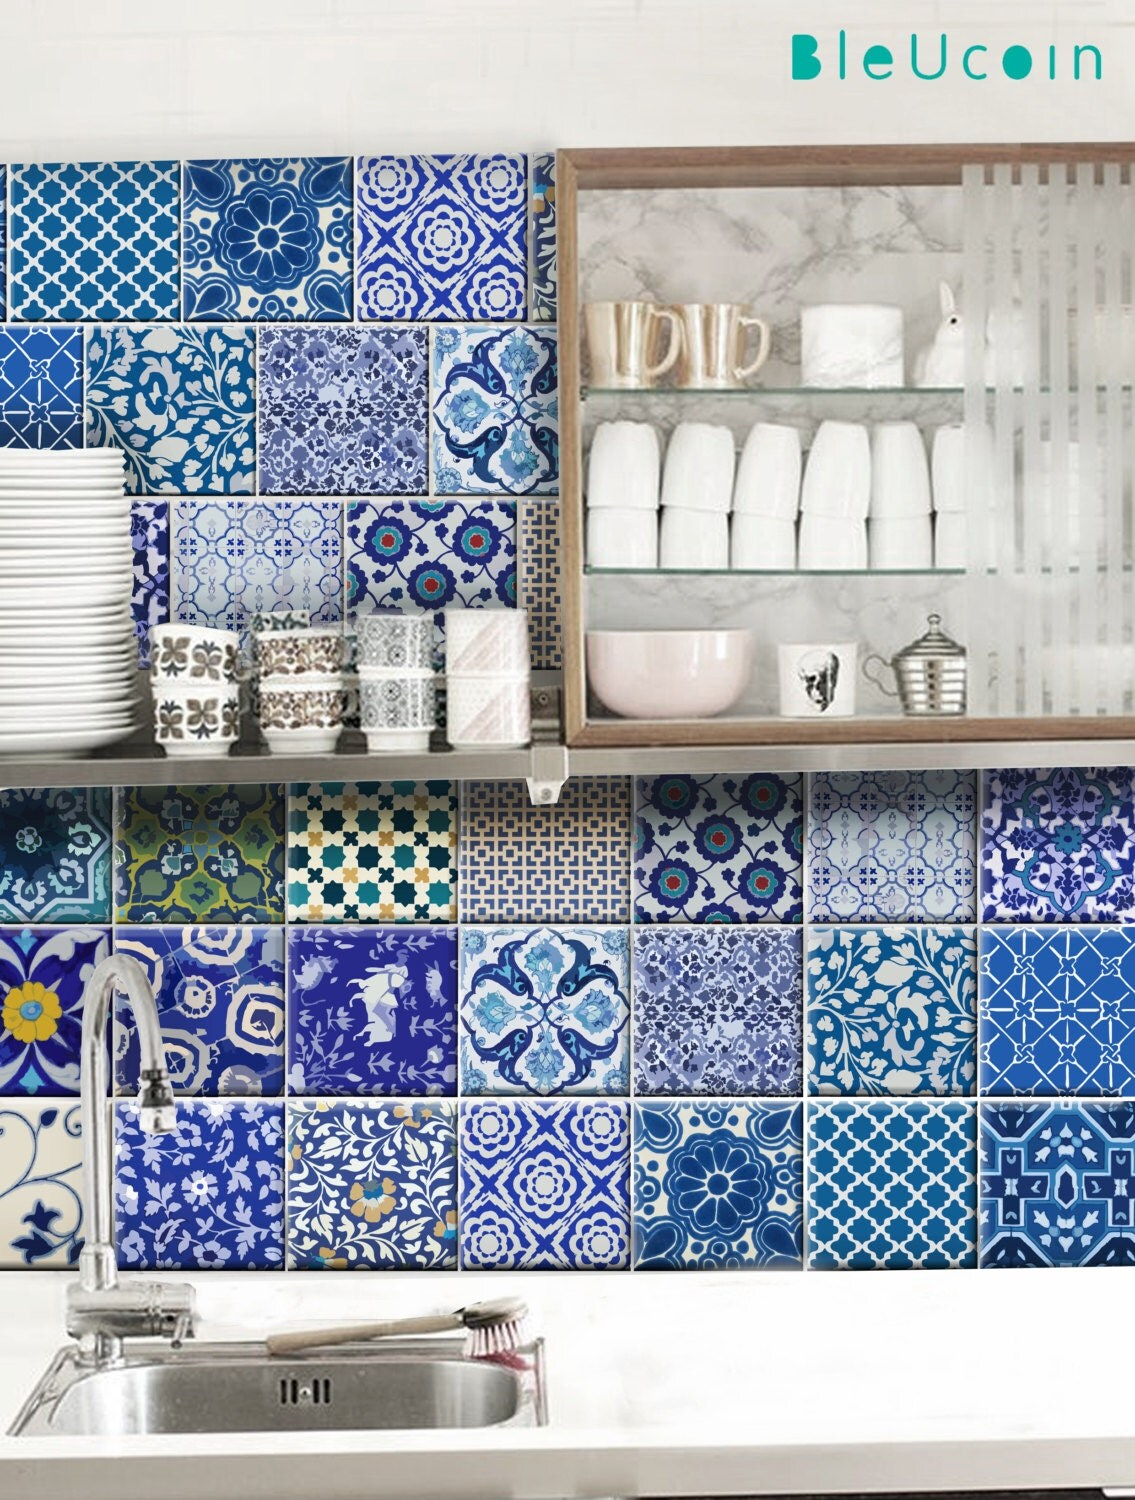 Kitchen/Bathroom Indian Jaipur Blue pottery tile/wall decals